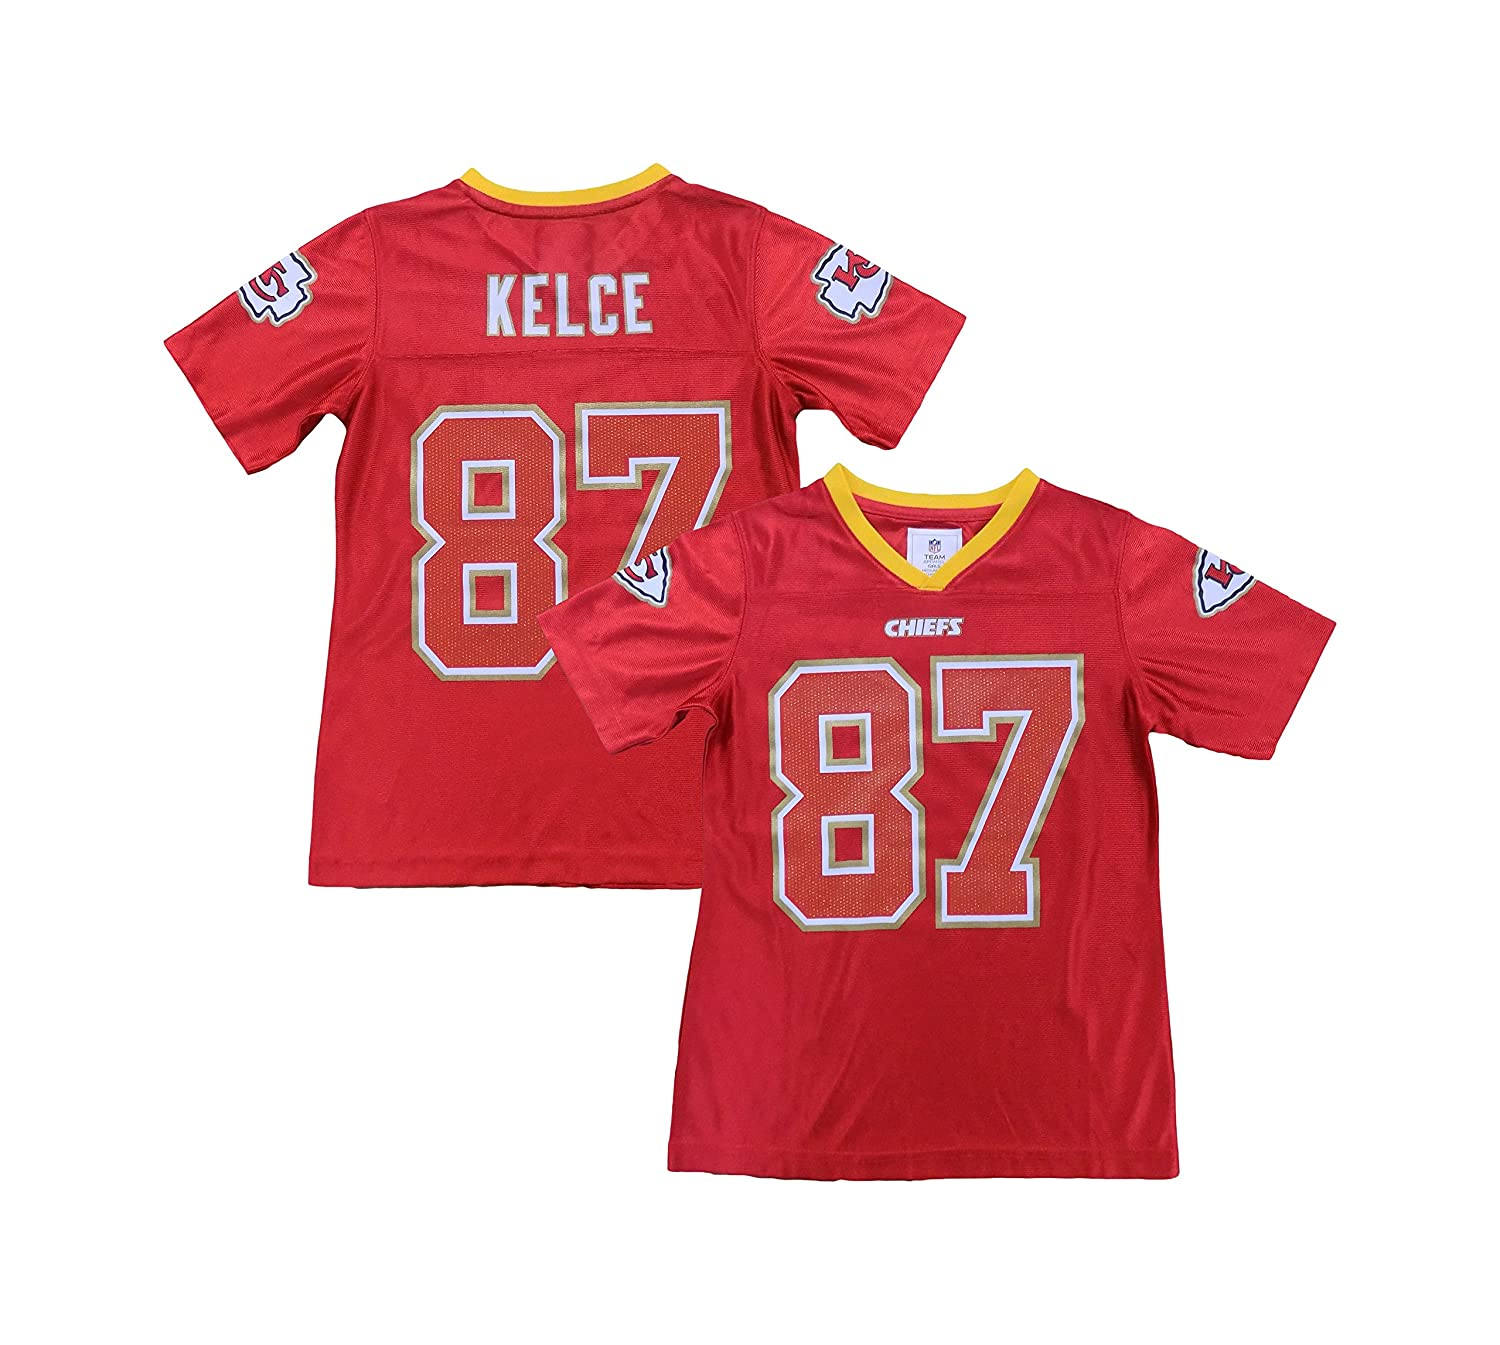 reputable site 66d41 f6ba5 Travis Kelce Kansas City Chiefs #87 Red Dazzle Girls Youth ...